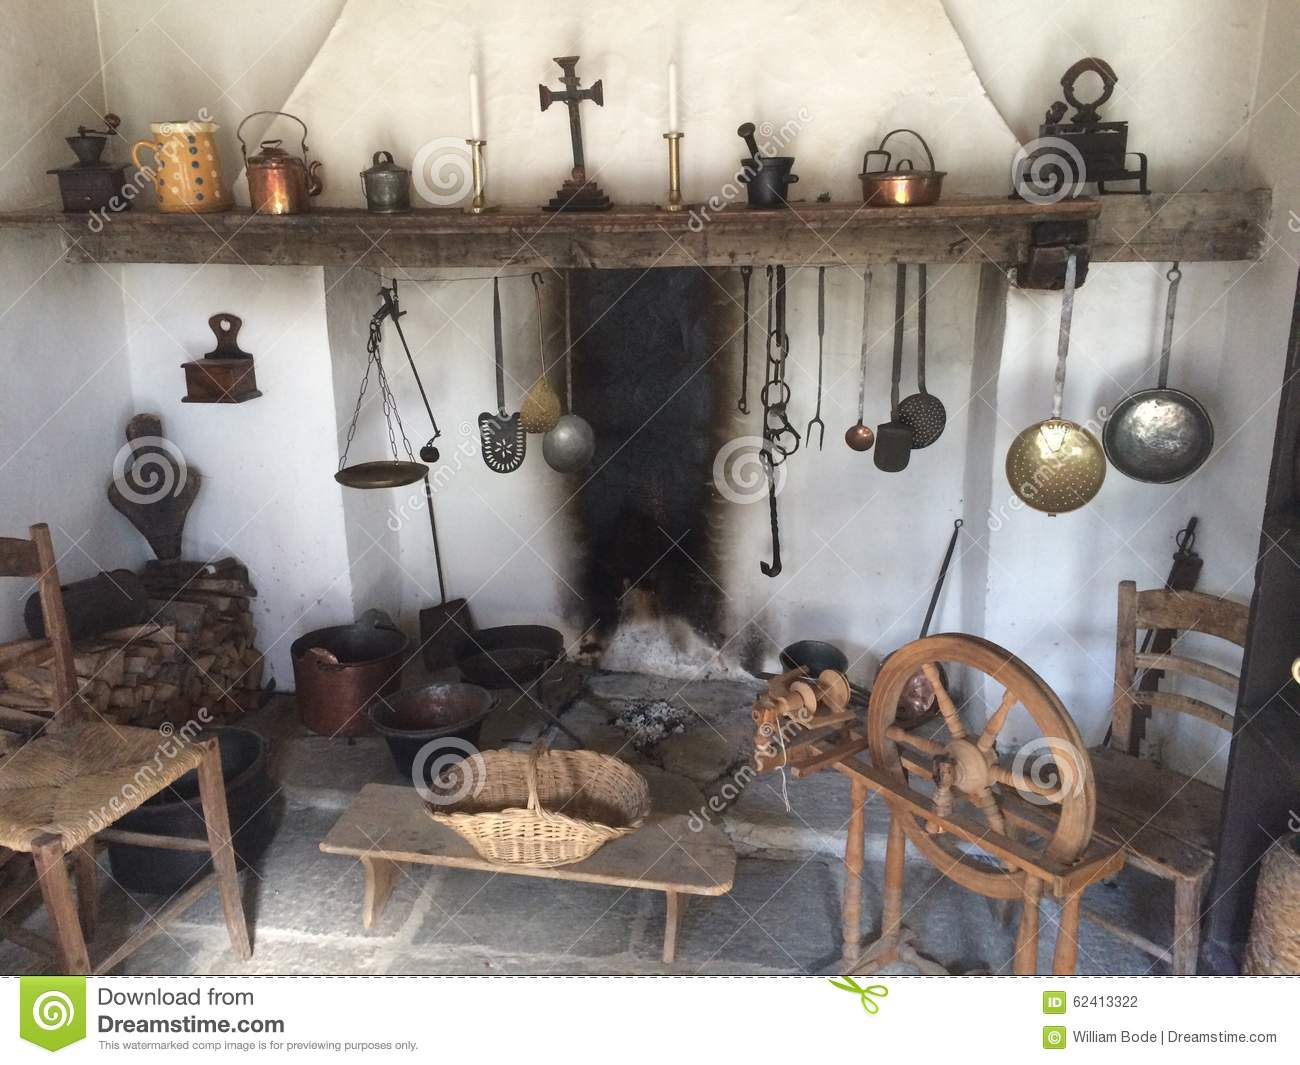 660 Kitchen Victorian Photos Free Royalty Stock From Dreamstime